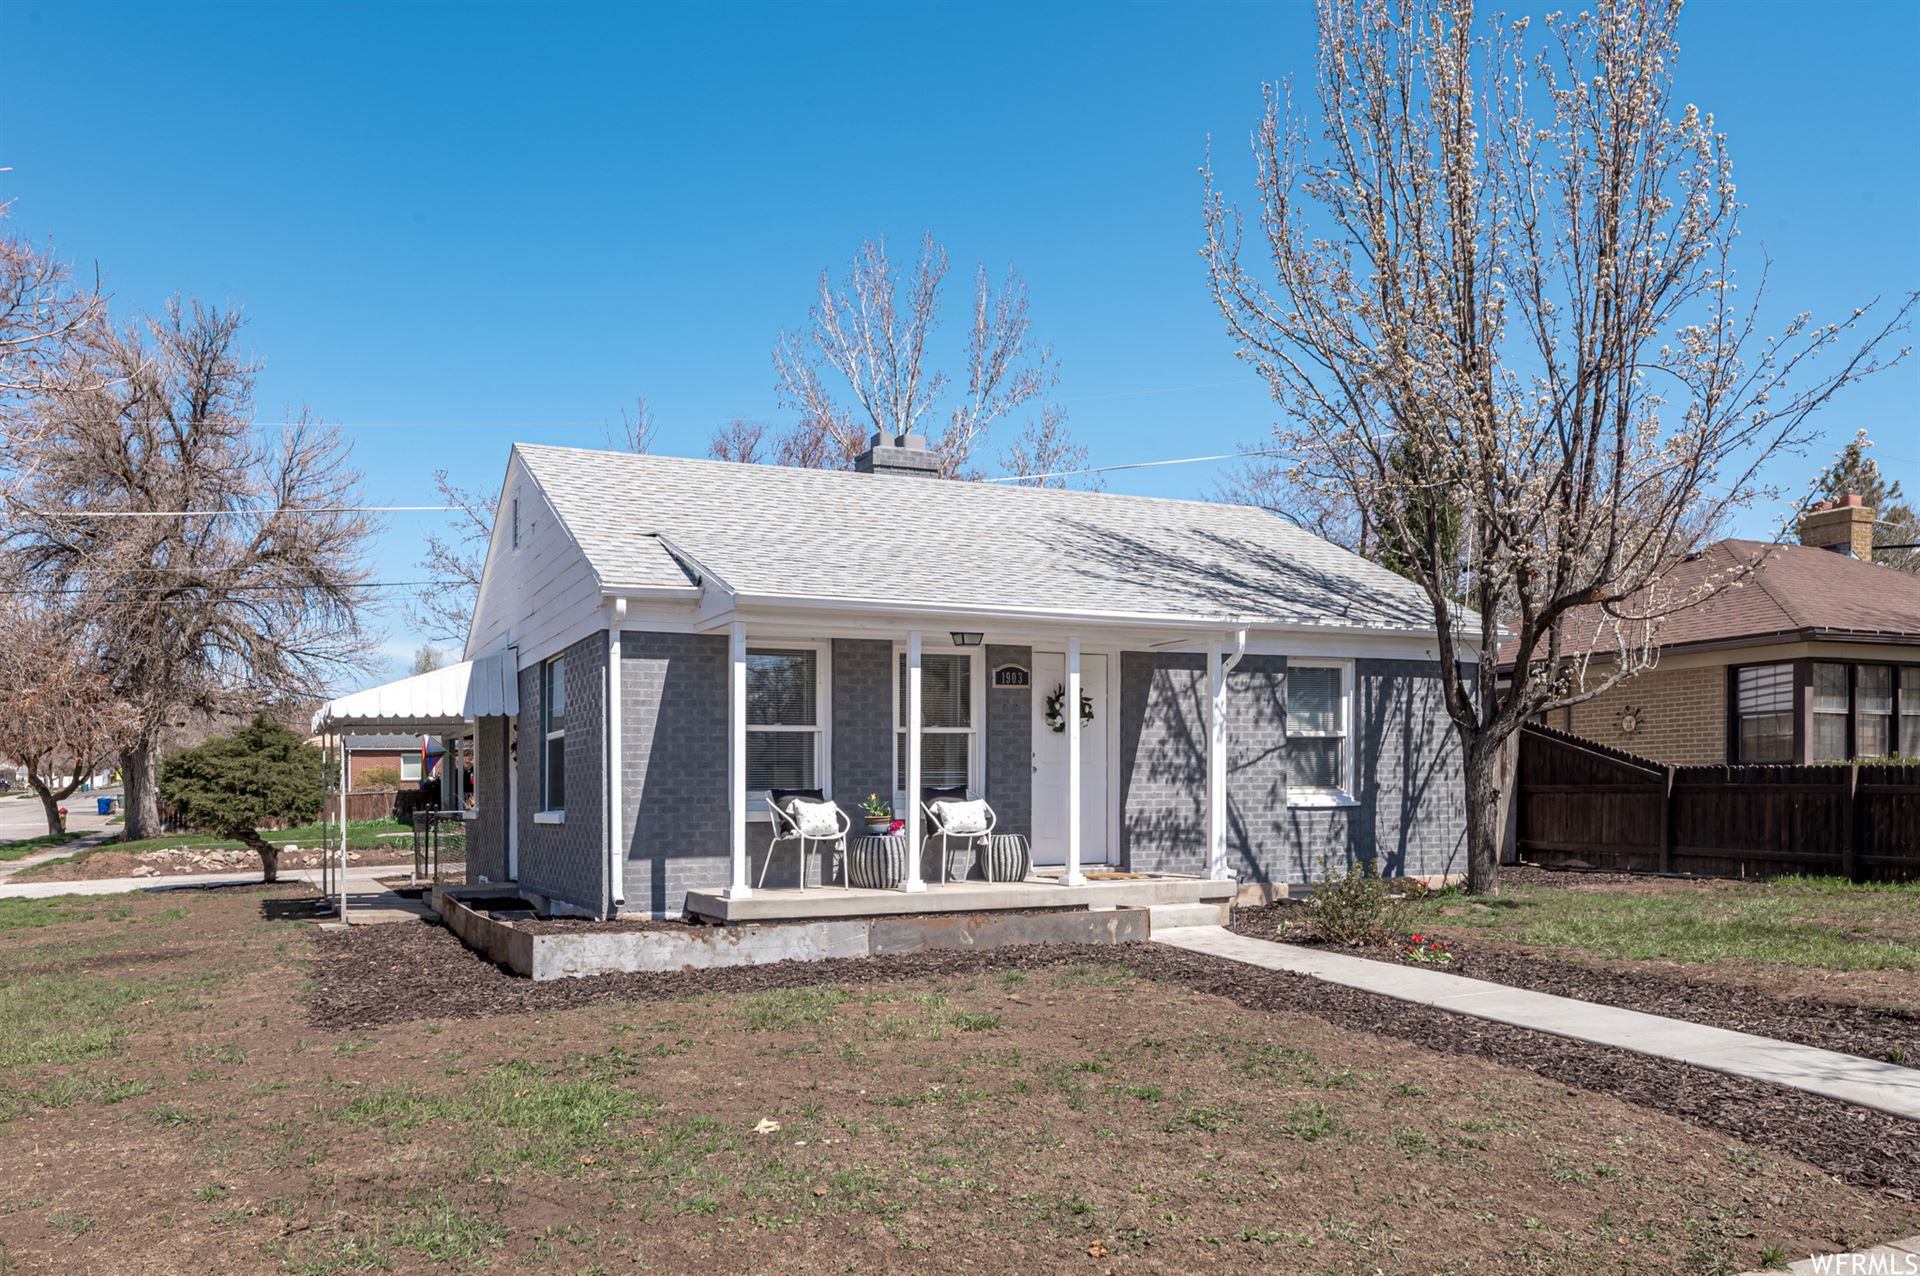 Photo of 1903 E REDONDO S AVE, Salt Lake City, UT 84108 (MLS # 1734311)